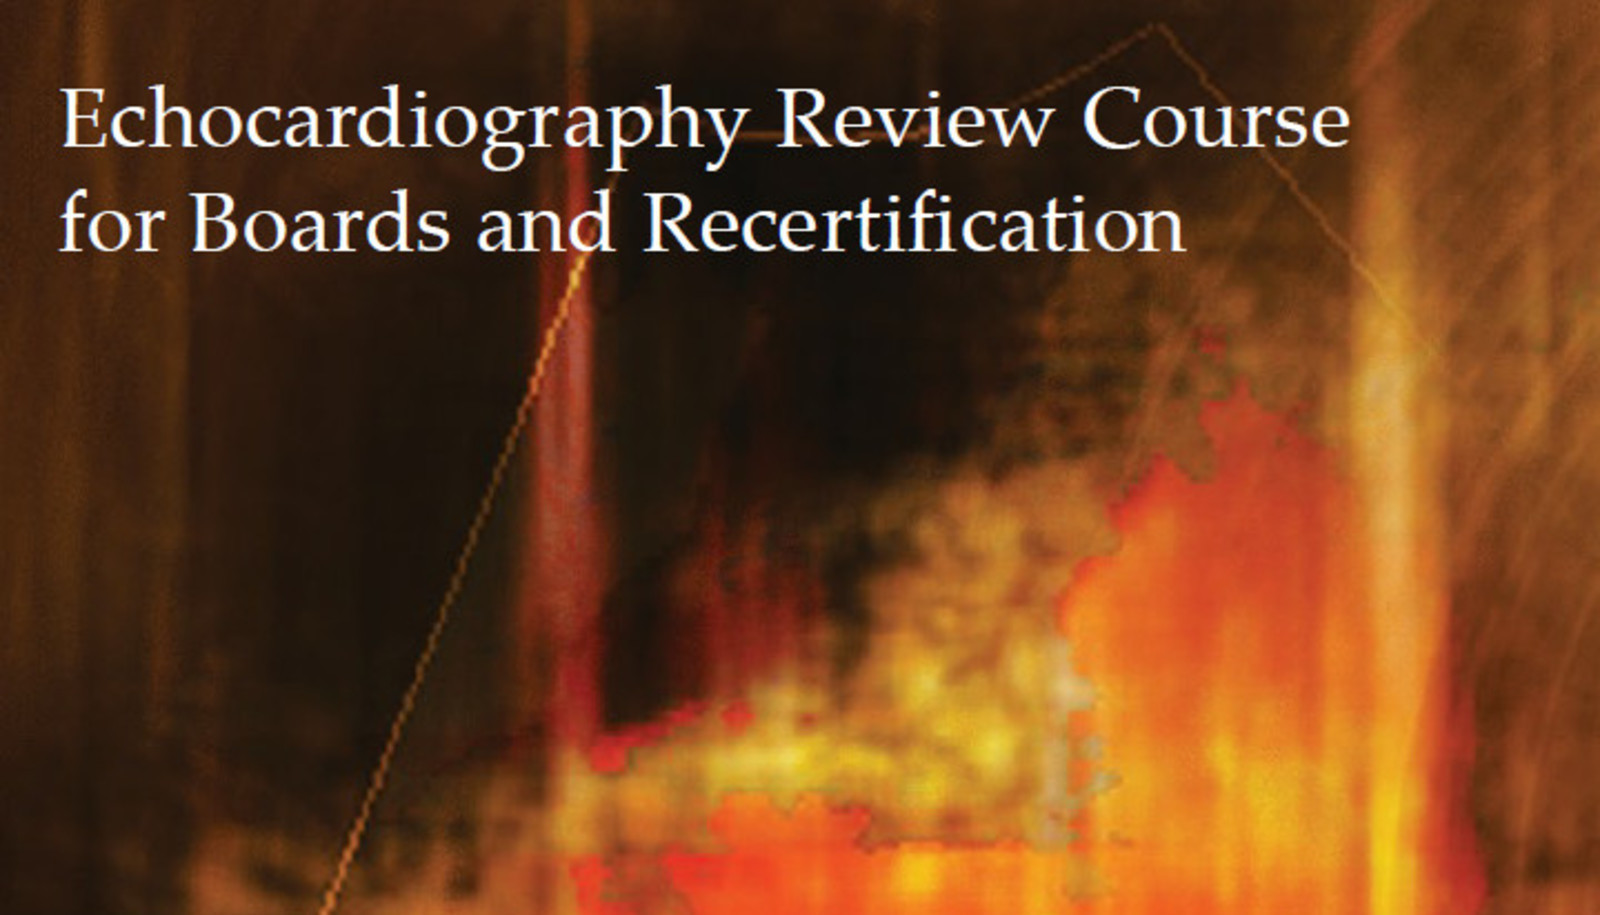 Mayo Clinic Echocardiography Review Course for Boards and Recertification